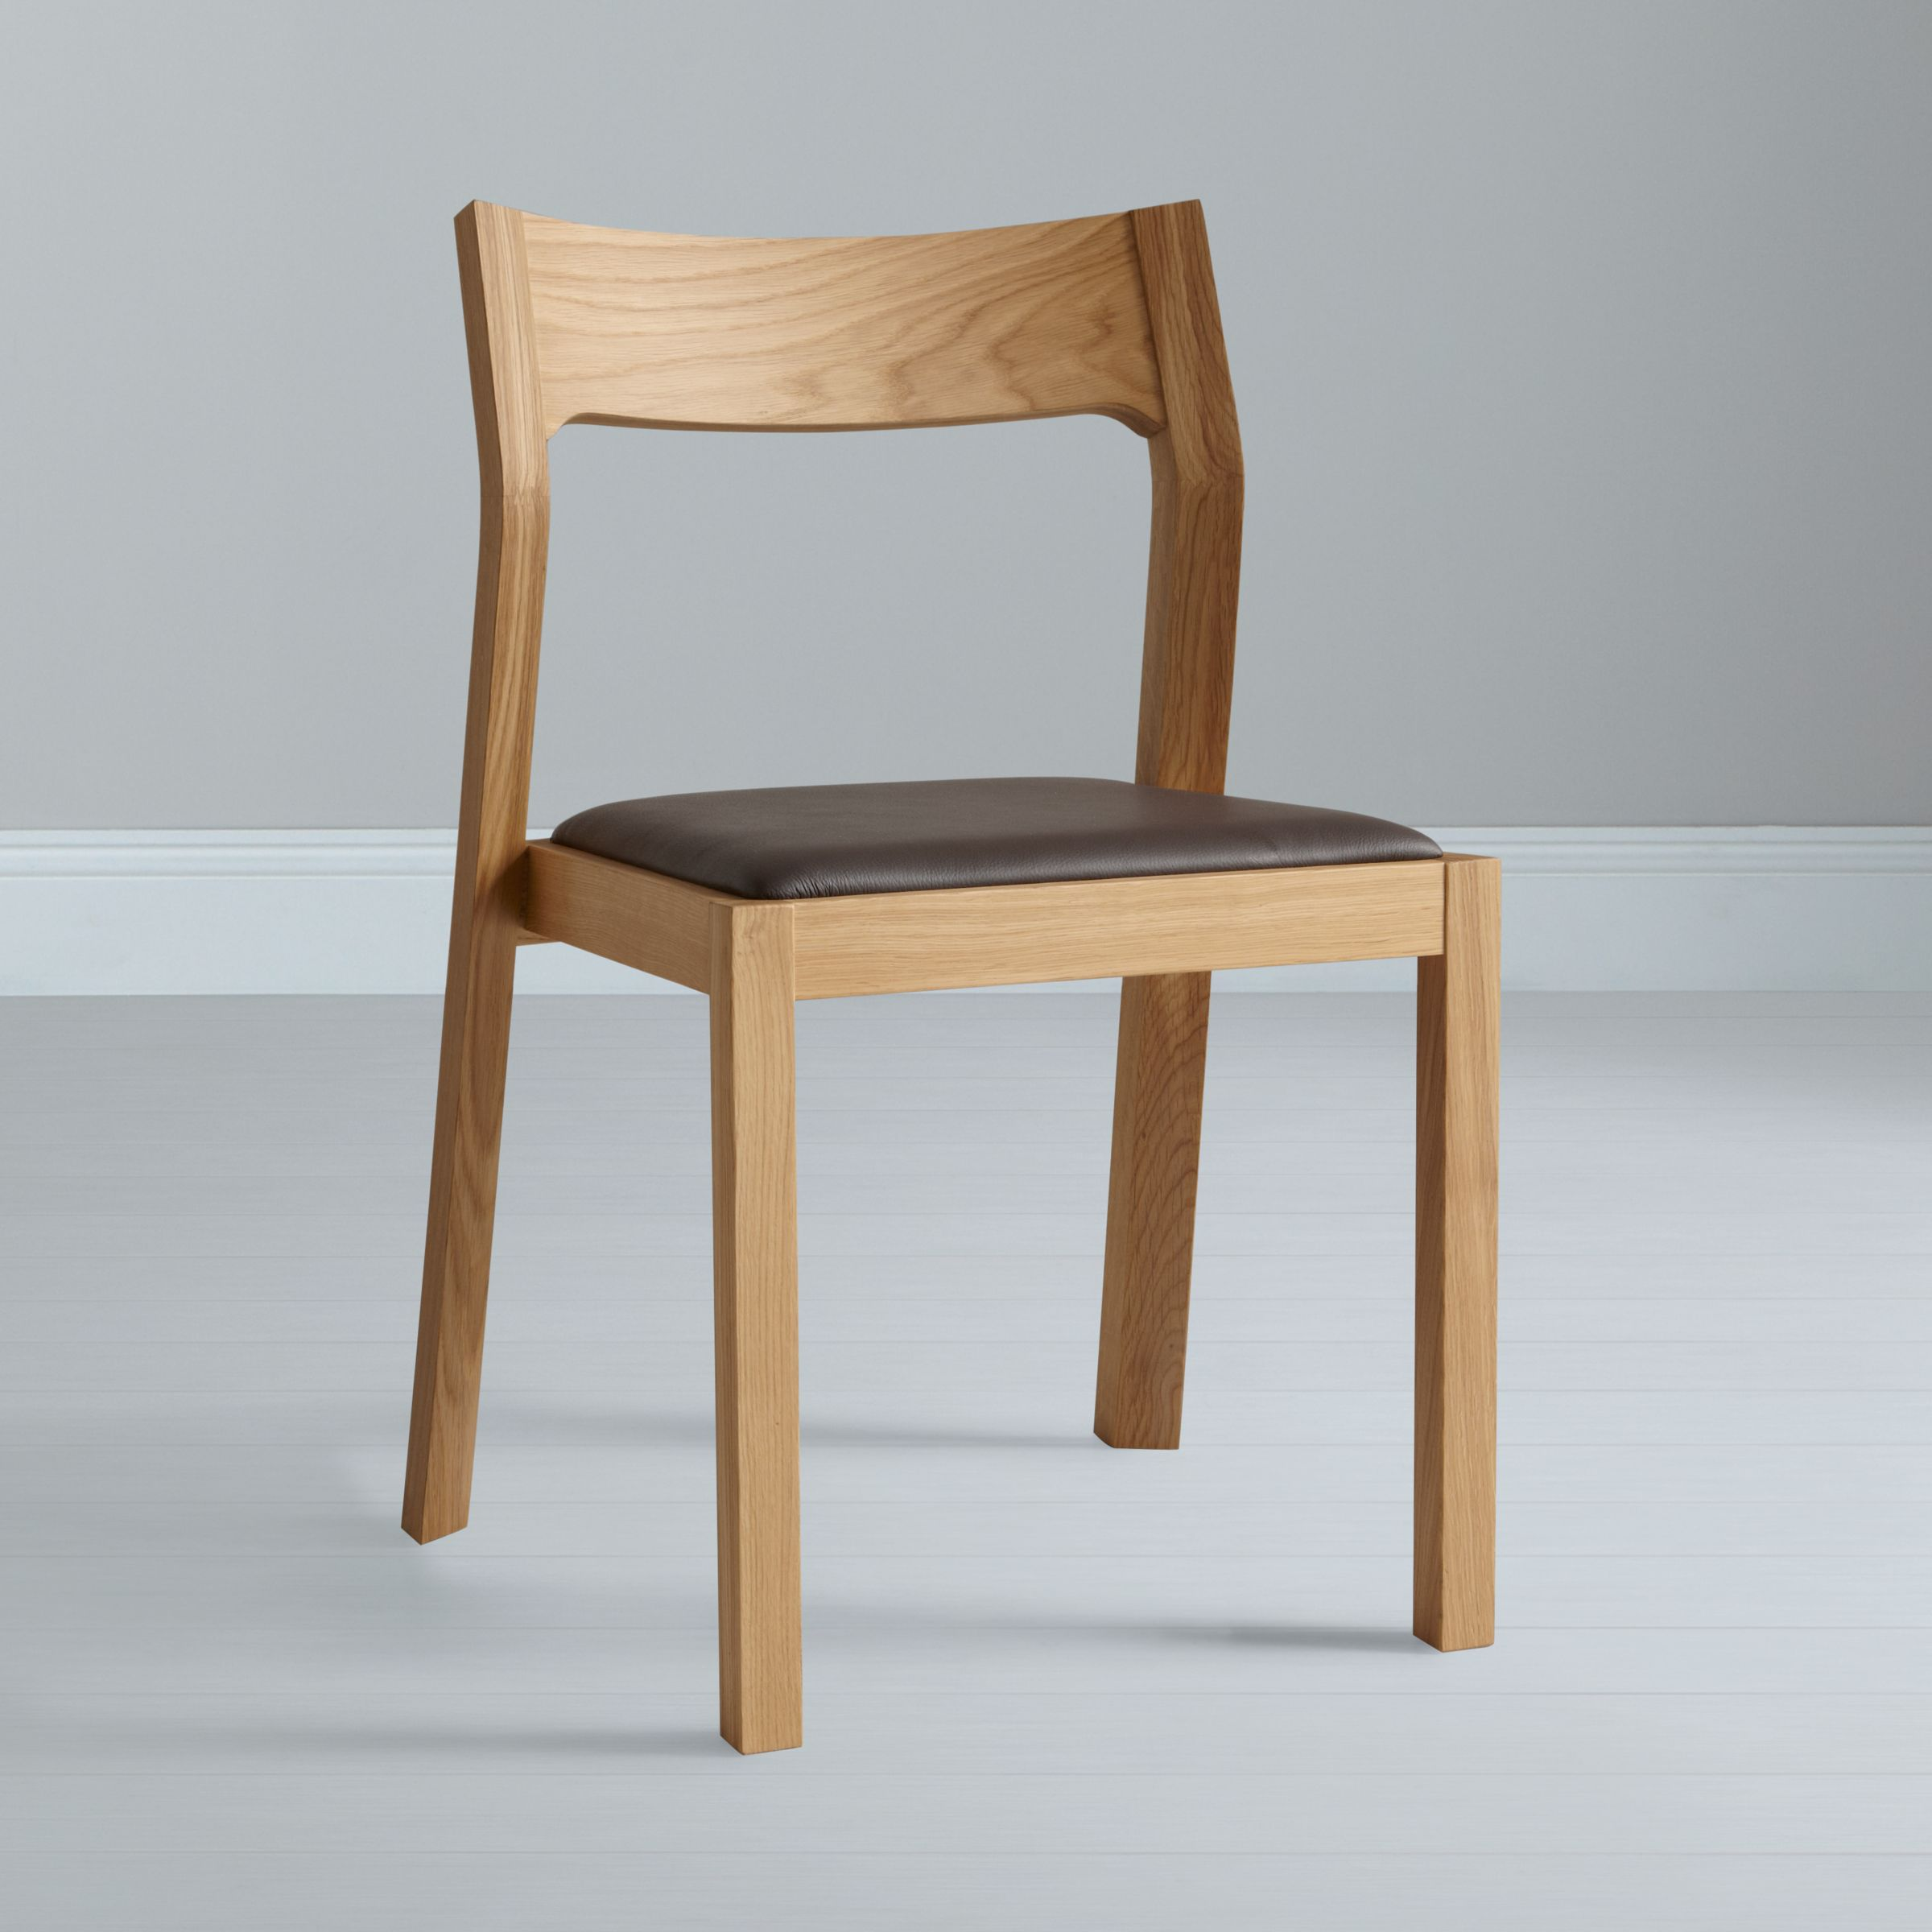 dining chair seat pads : 230630328zoom from www.comparestoreprices.co.uk size 1600 x 1600 jpeg 210kB